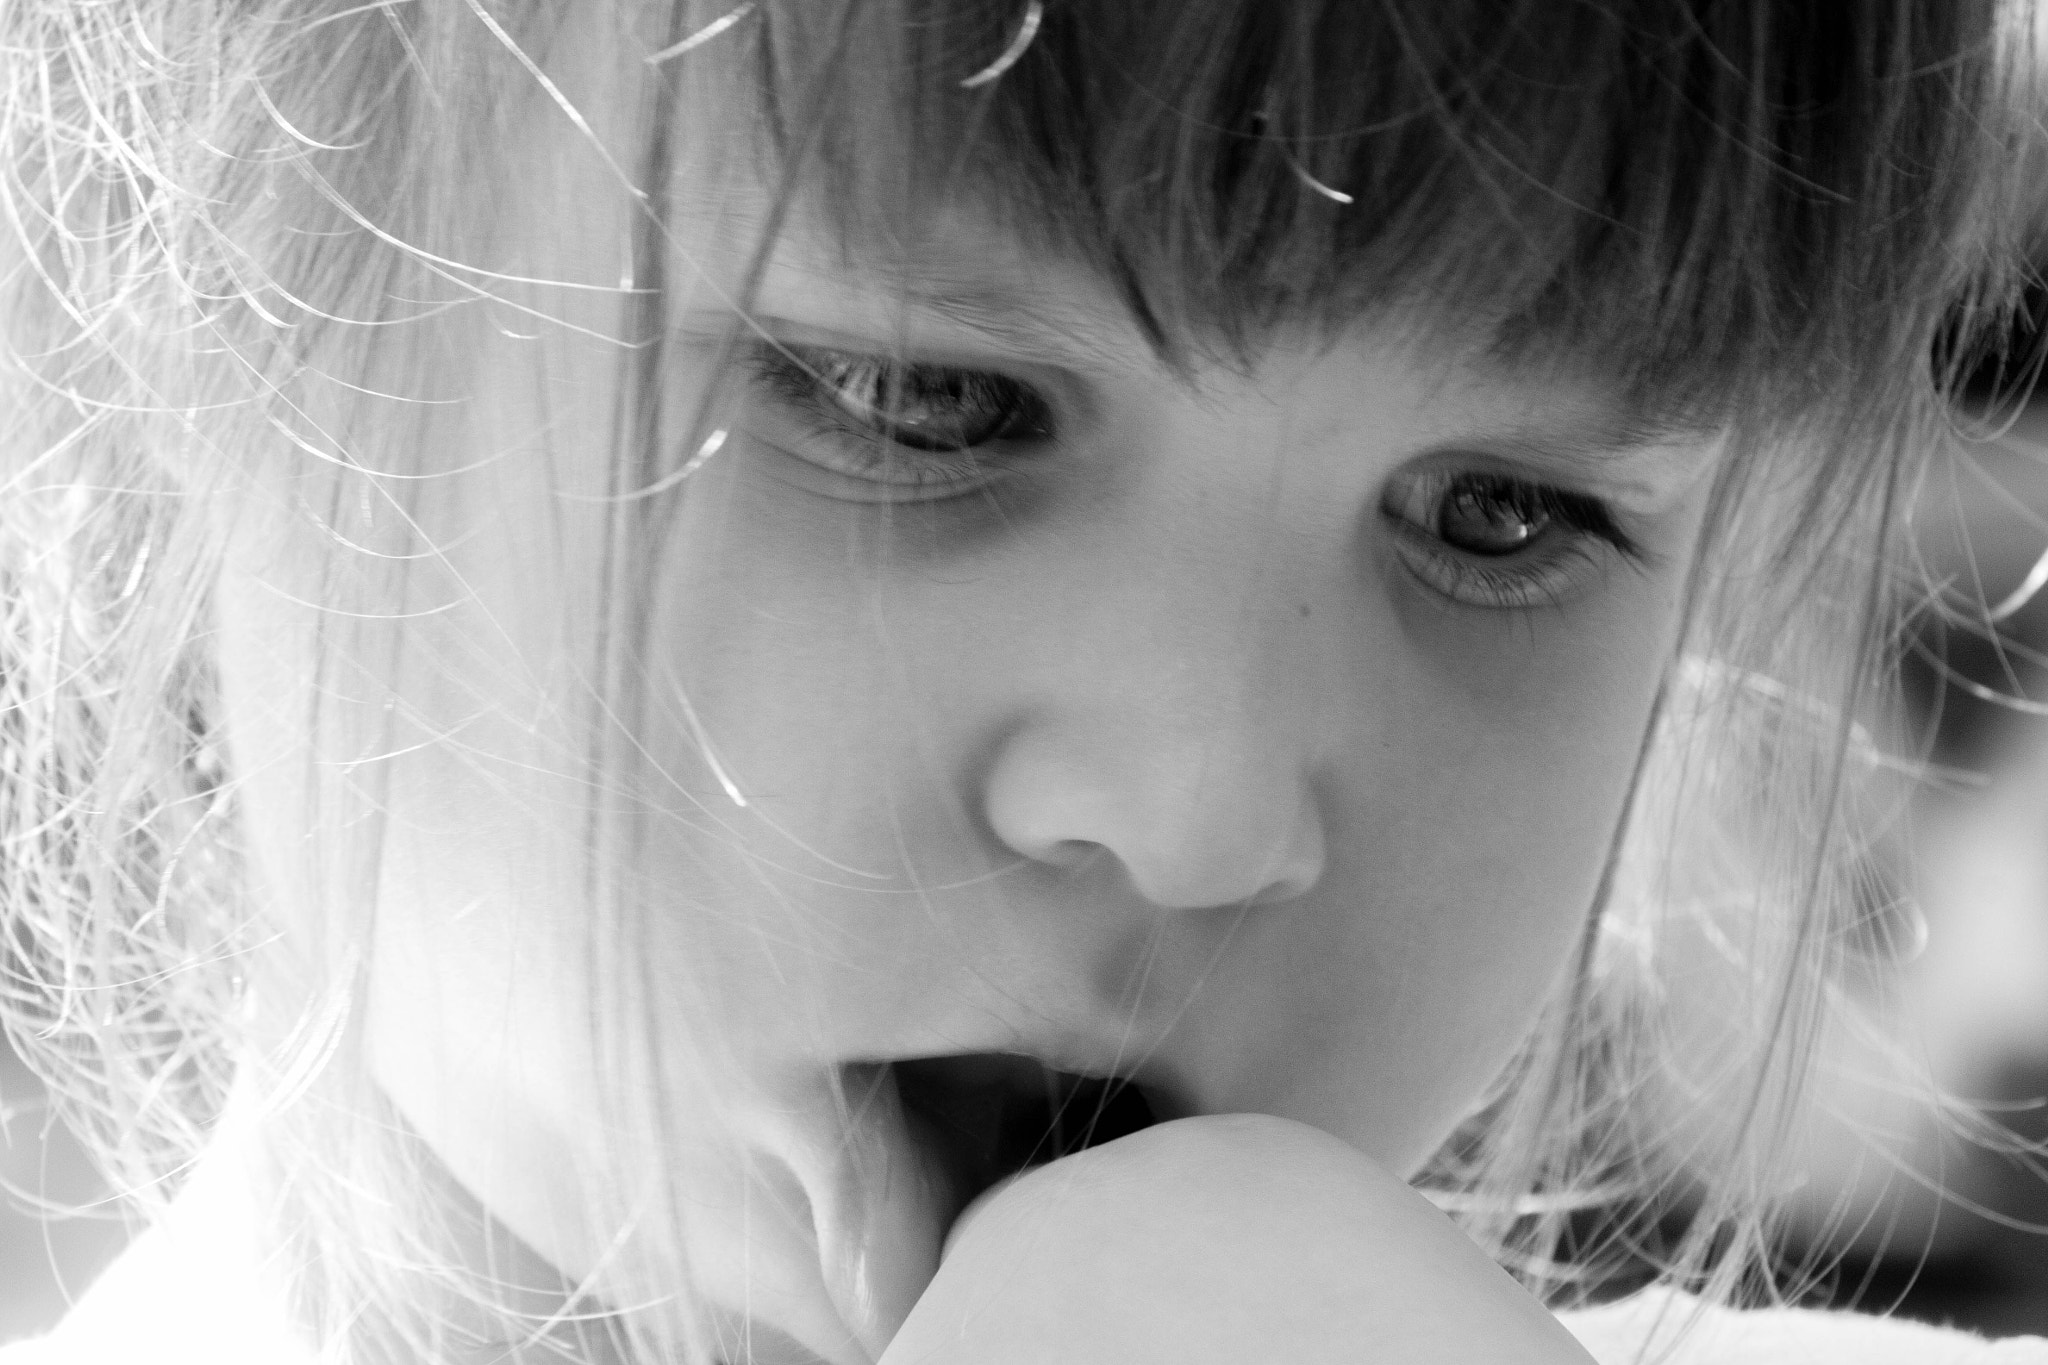 Photograph BW childwood by Nivi Lachtarnik on 500px